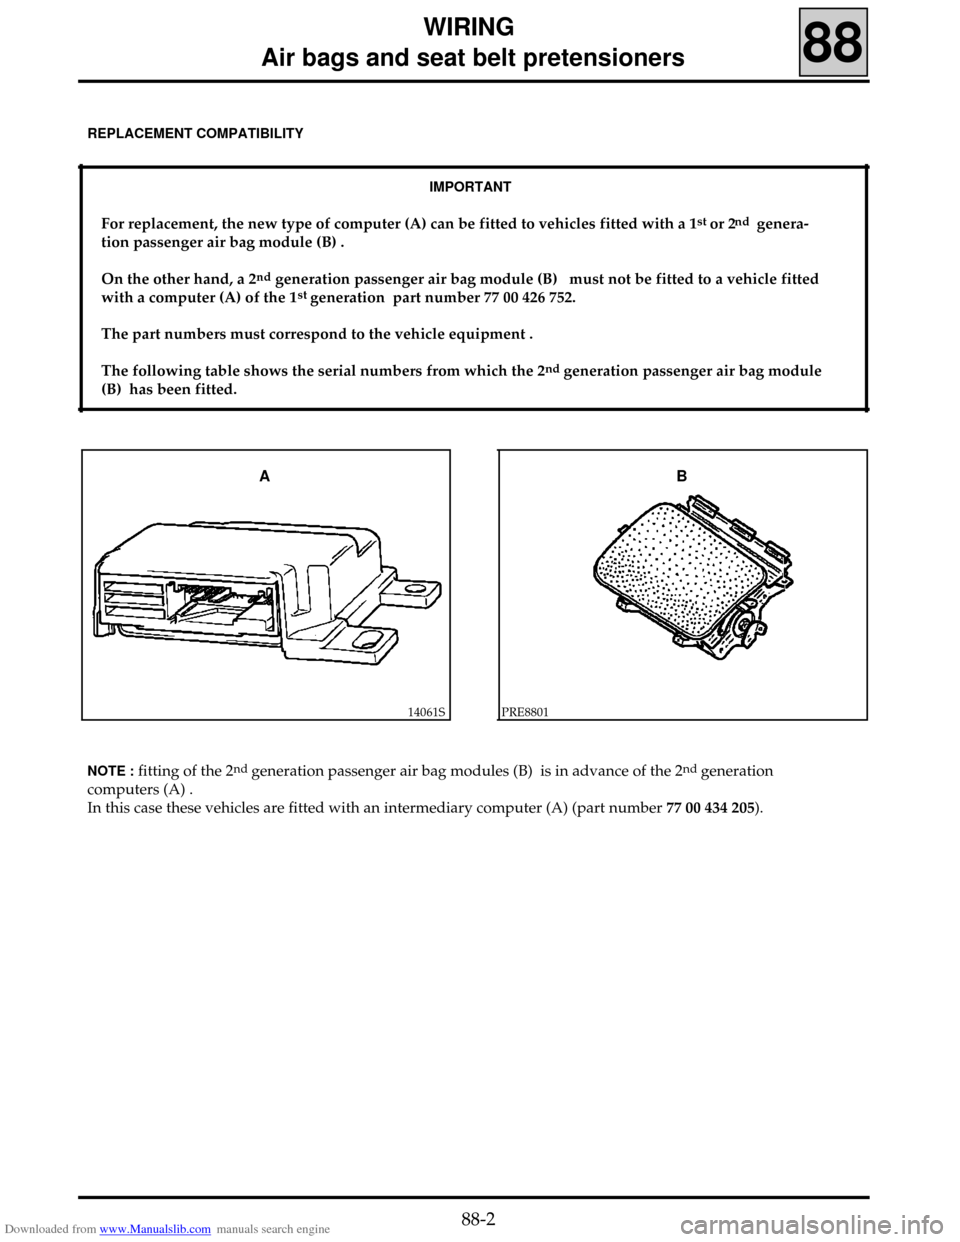 RENAULT CLIO 1999 X65 / 2.G Air Bag And Seat Belts Workshop Manual, Page 4